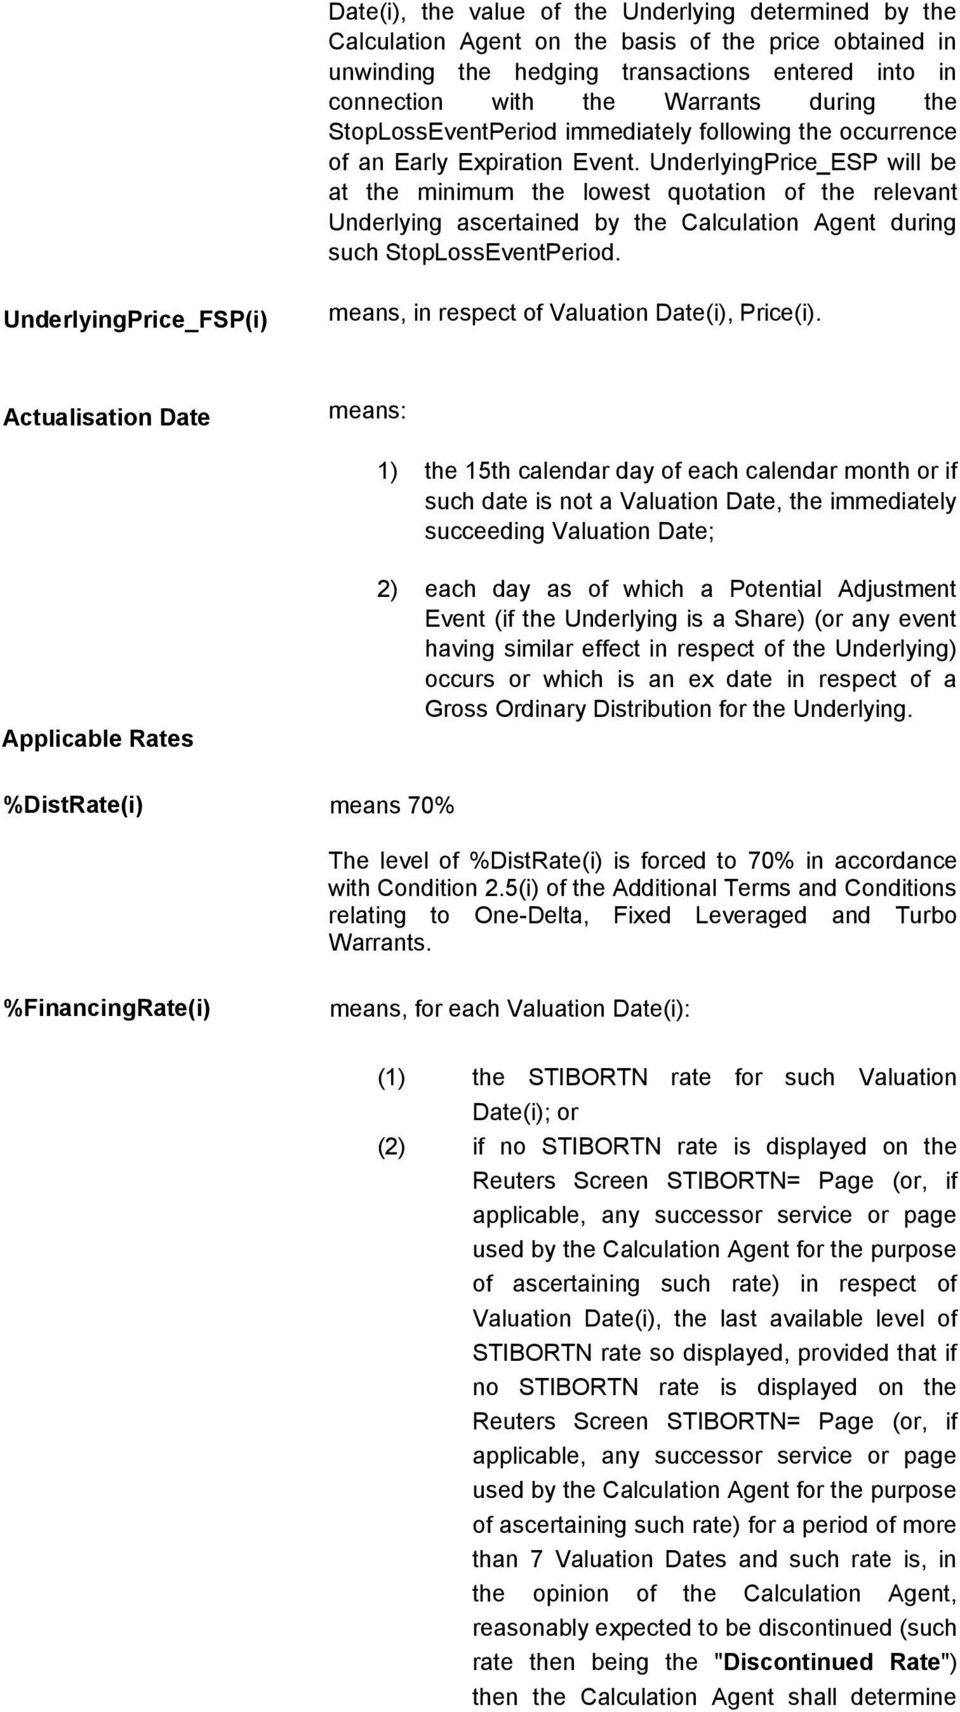 UnderlyingPrice_ESP will be at the minimum the lowest quotation of the relevant Underlying ascertained by the Calculation Agent during such StopLossEventPeriod.